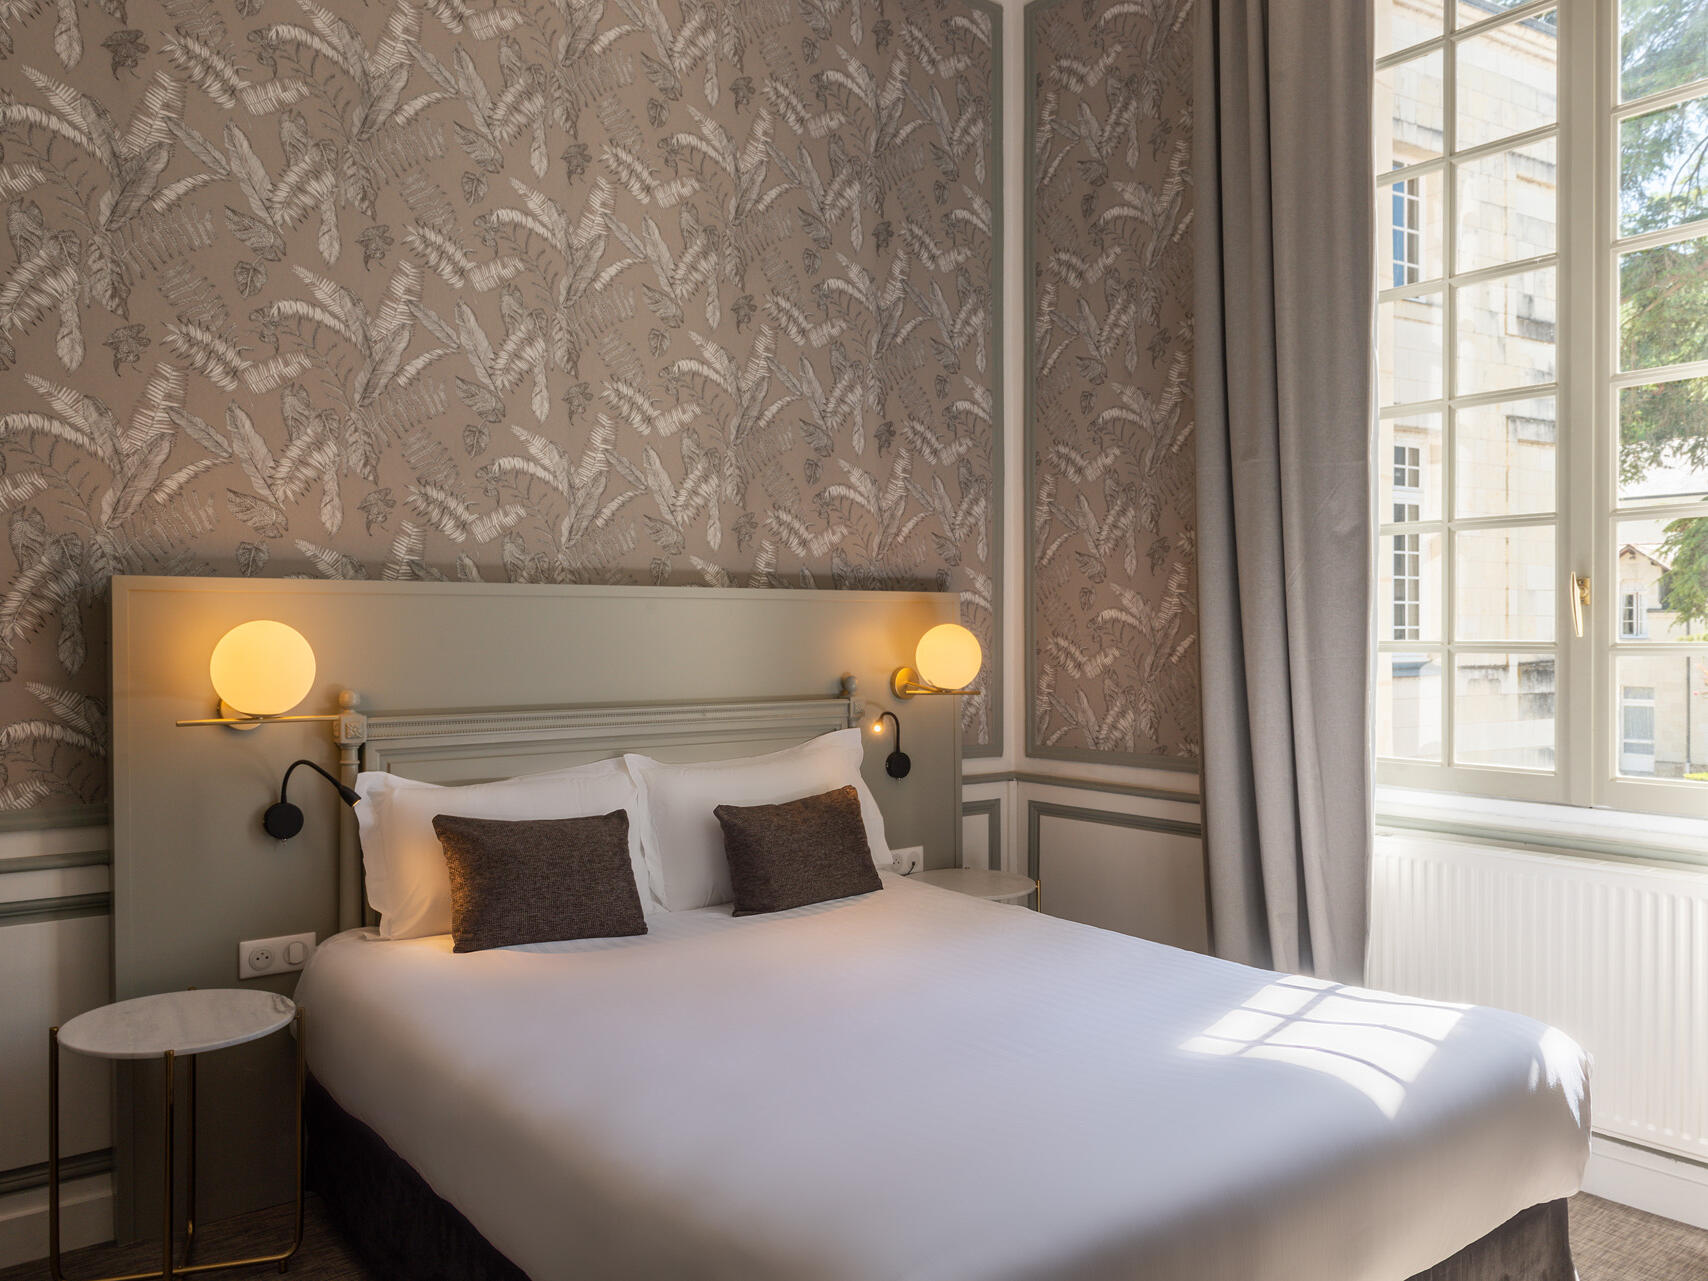 Double bed in chambre classique at The Originals Hotels